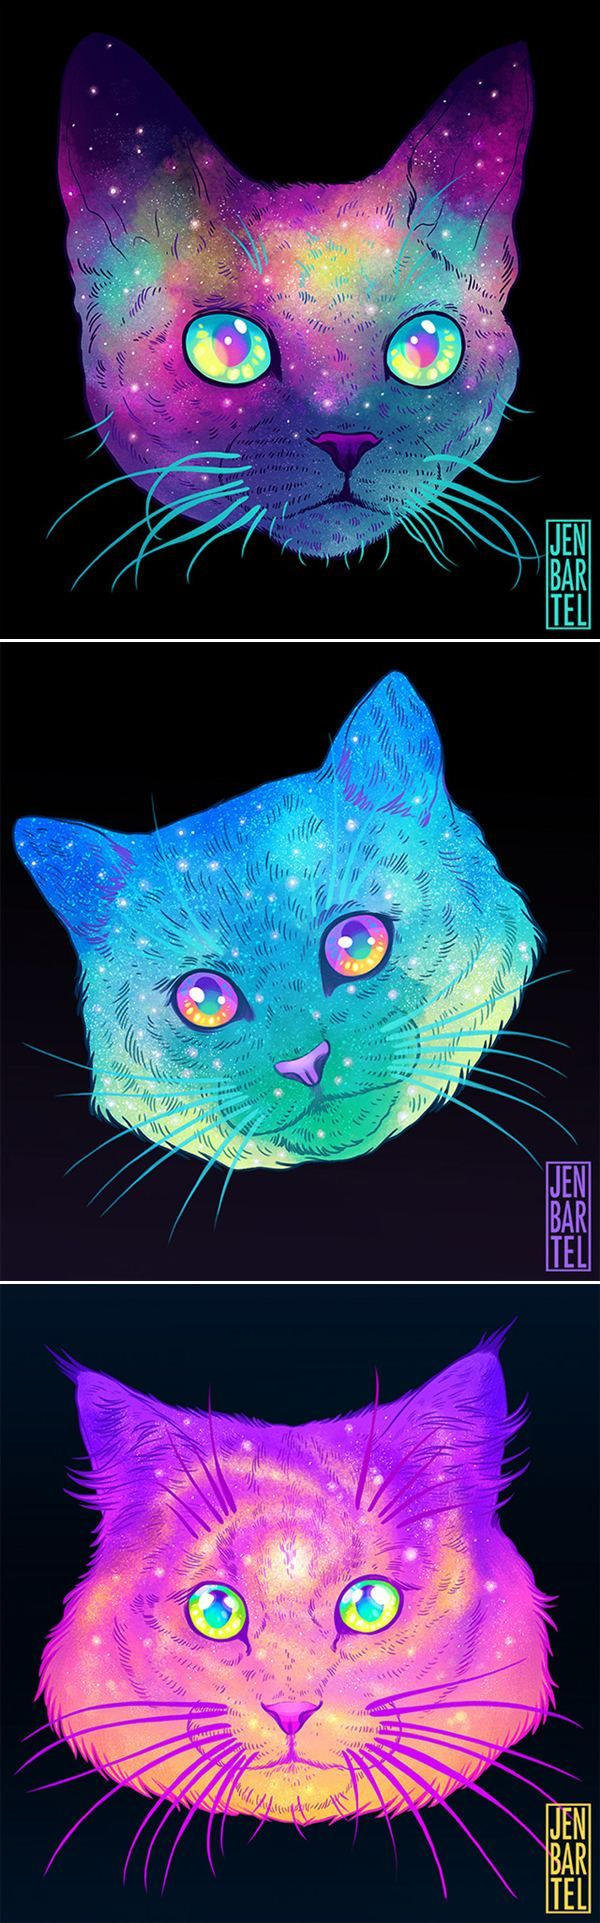 Illustrator Jen Bartel's Awesome Galactic Cats #art #illustrations #cats